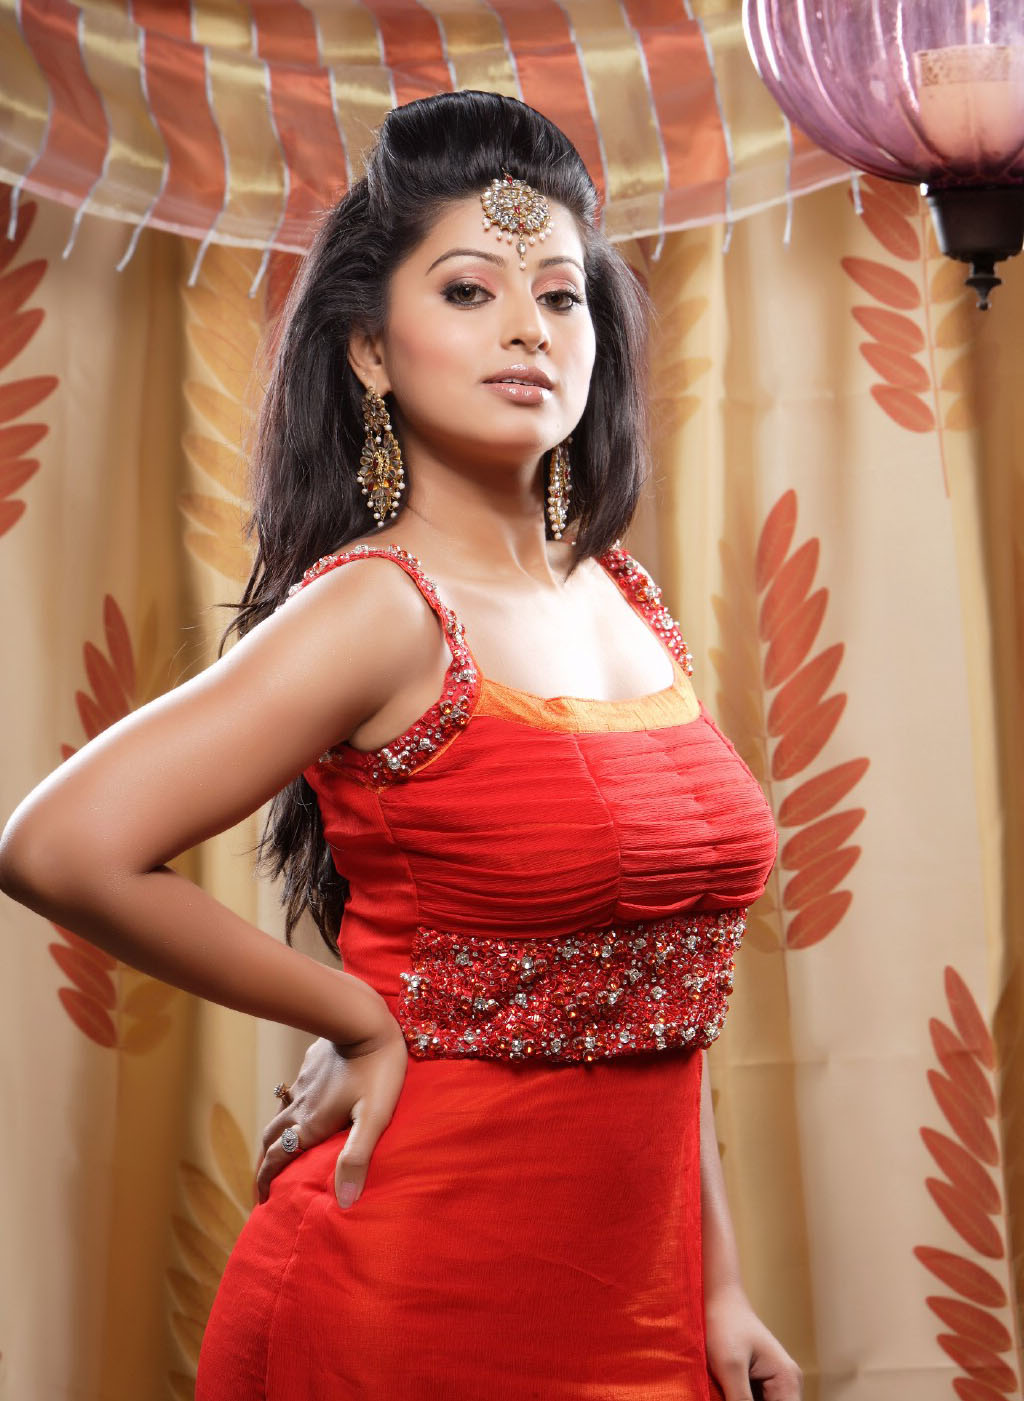 south indian hot wallpaper